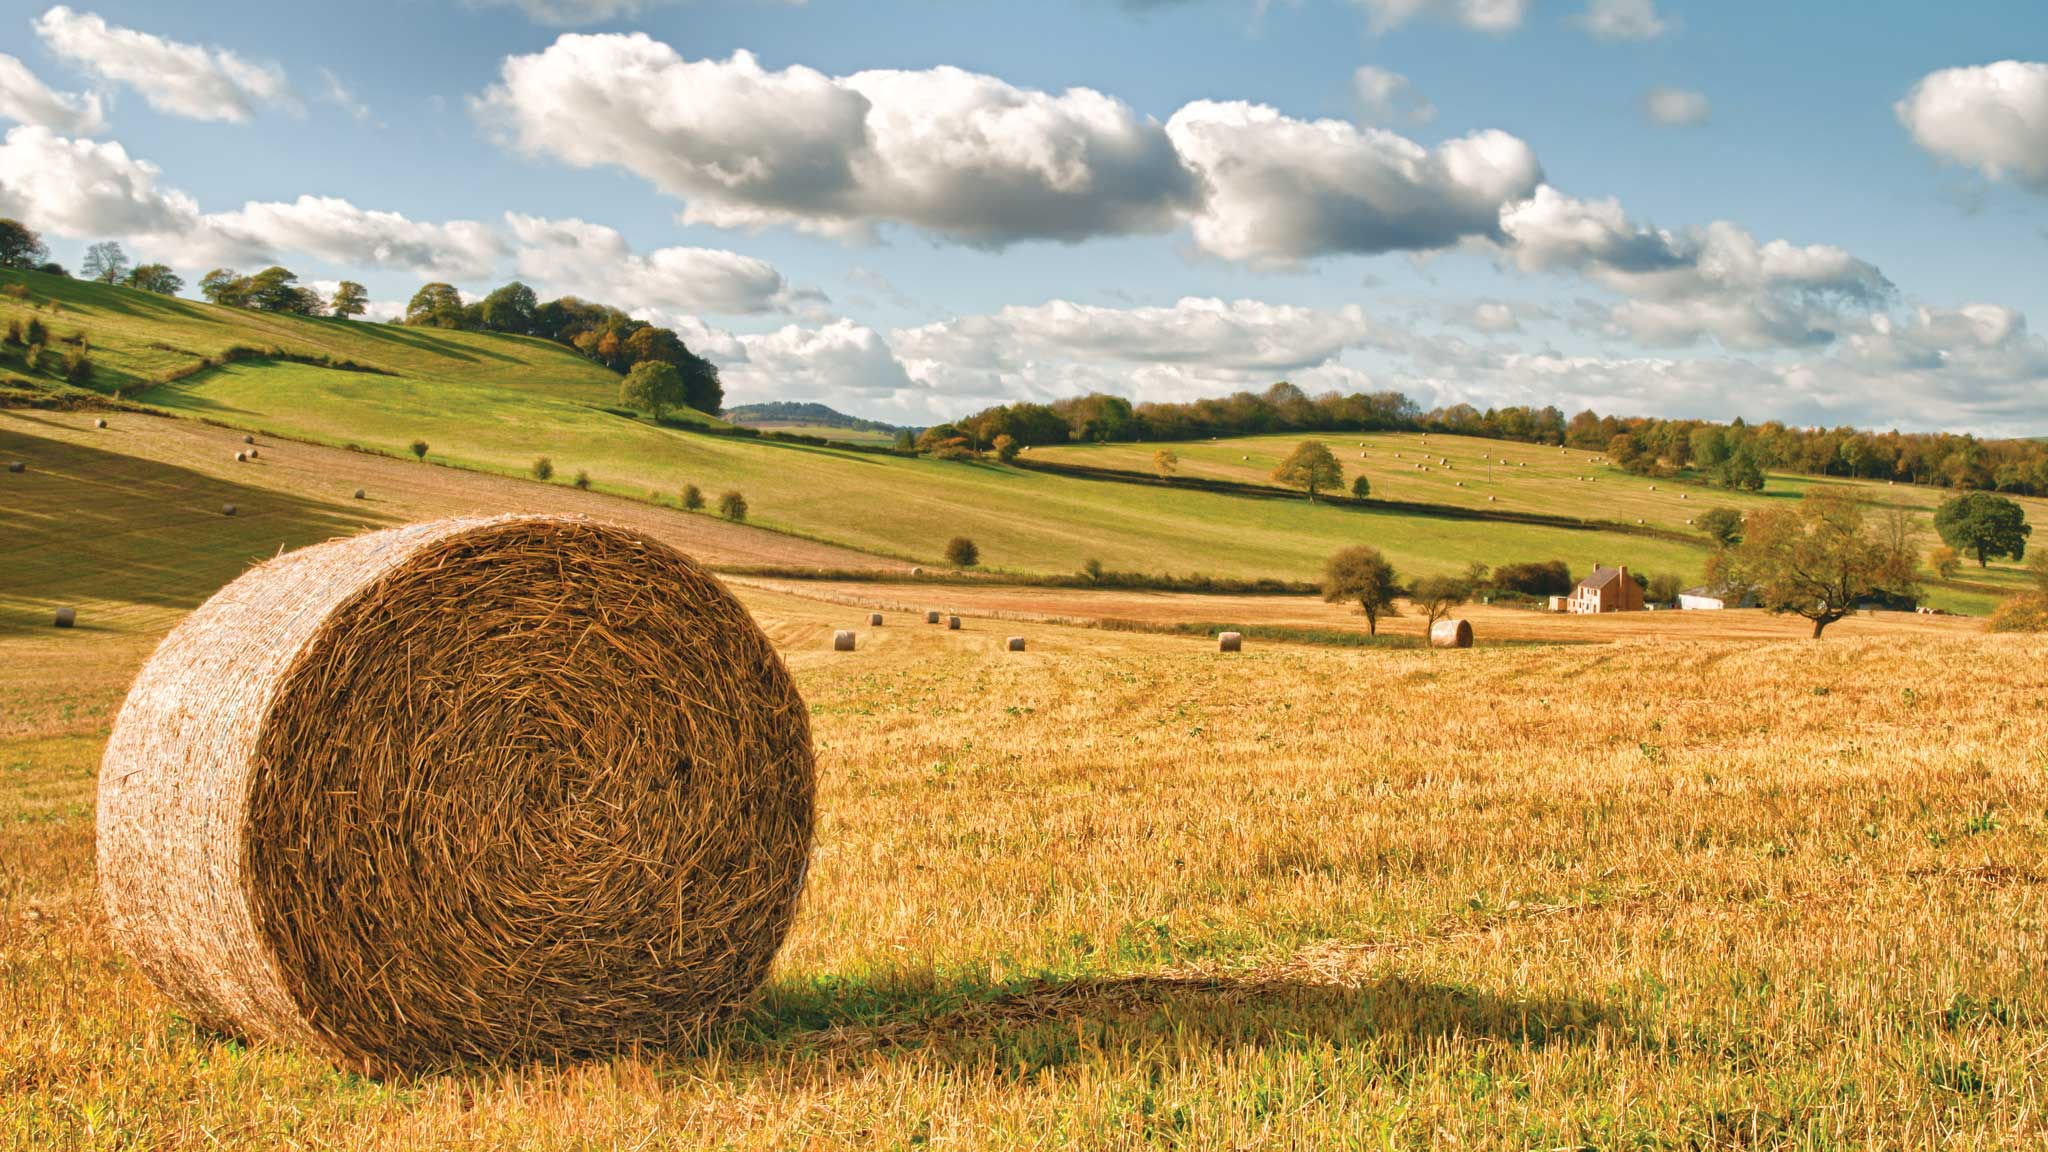 Farmers brace for end of section 21 no-fault evictions - https://roomslocal.co.uk/blog/farmers-brace-for-end-of-section-21-no-fault-evictions #brace #section #fault #evictions